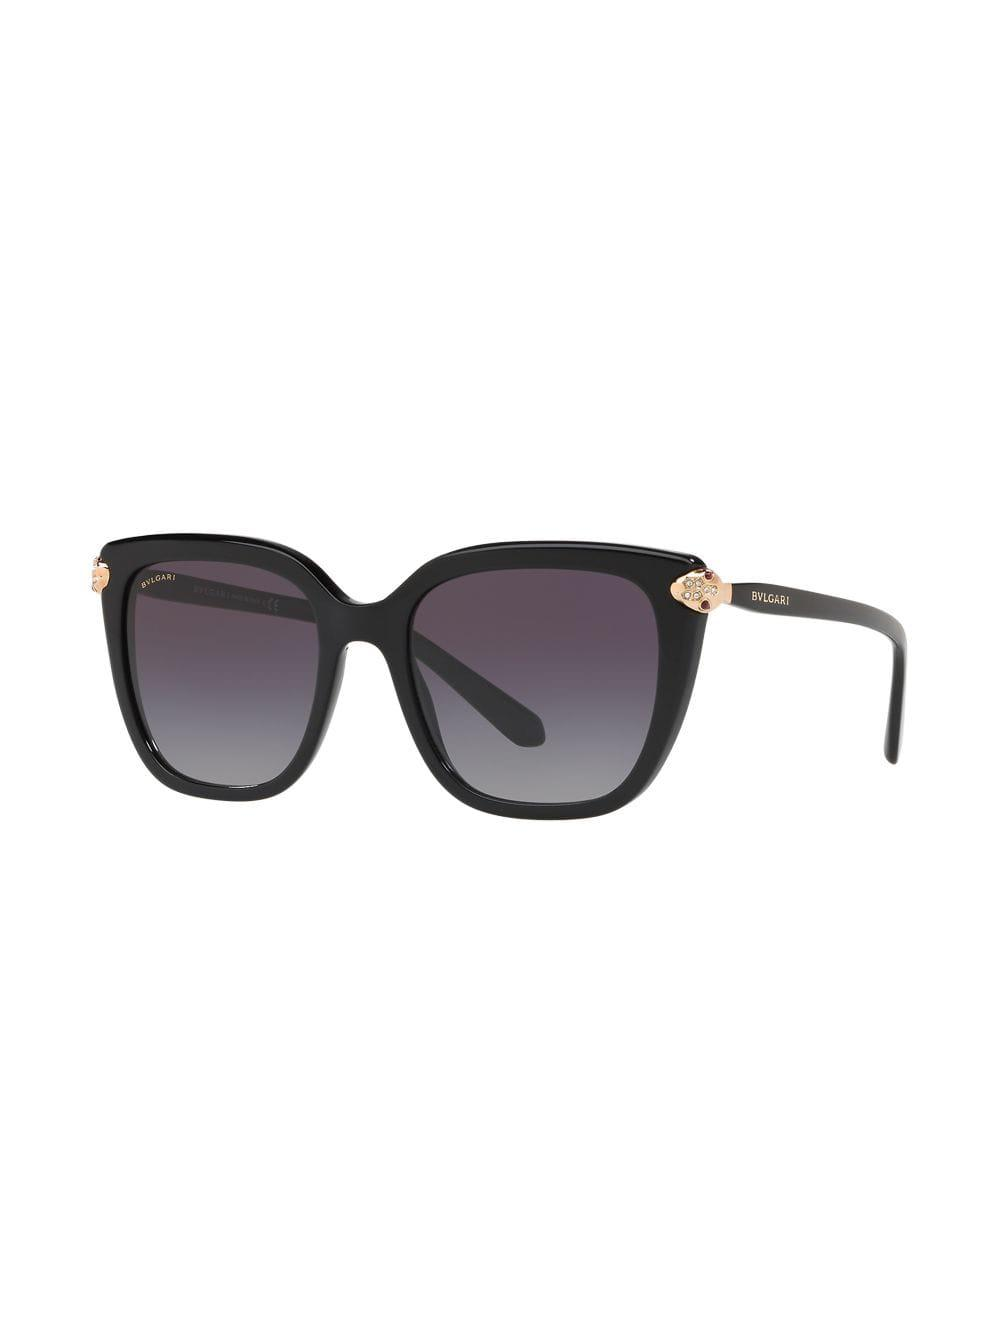 cdcaa3529ab7 Bvlgari Oversized Square Frame Sunglasses in Black - Lyst